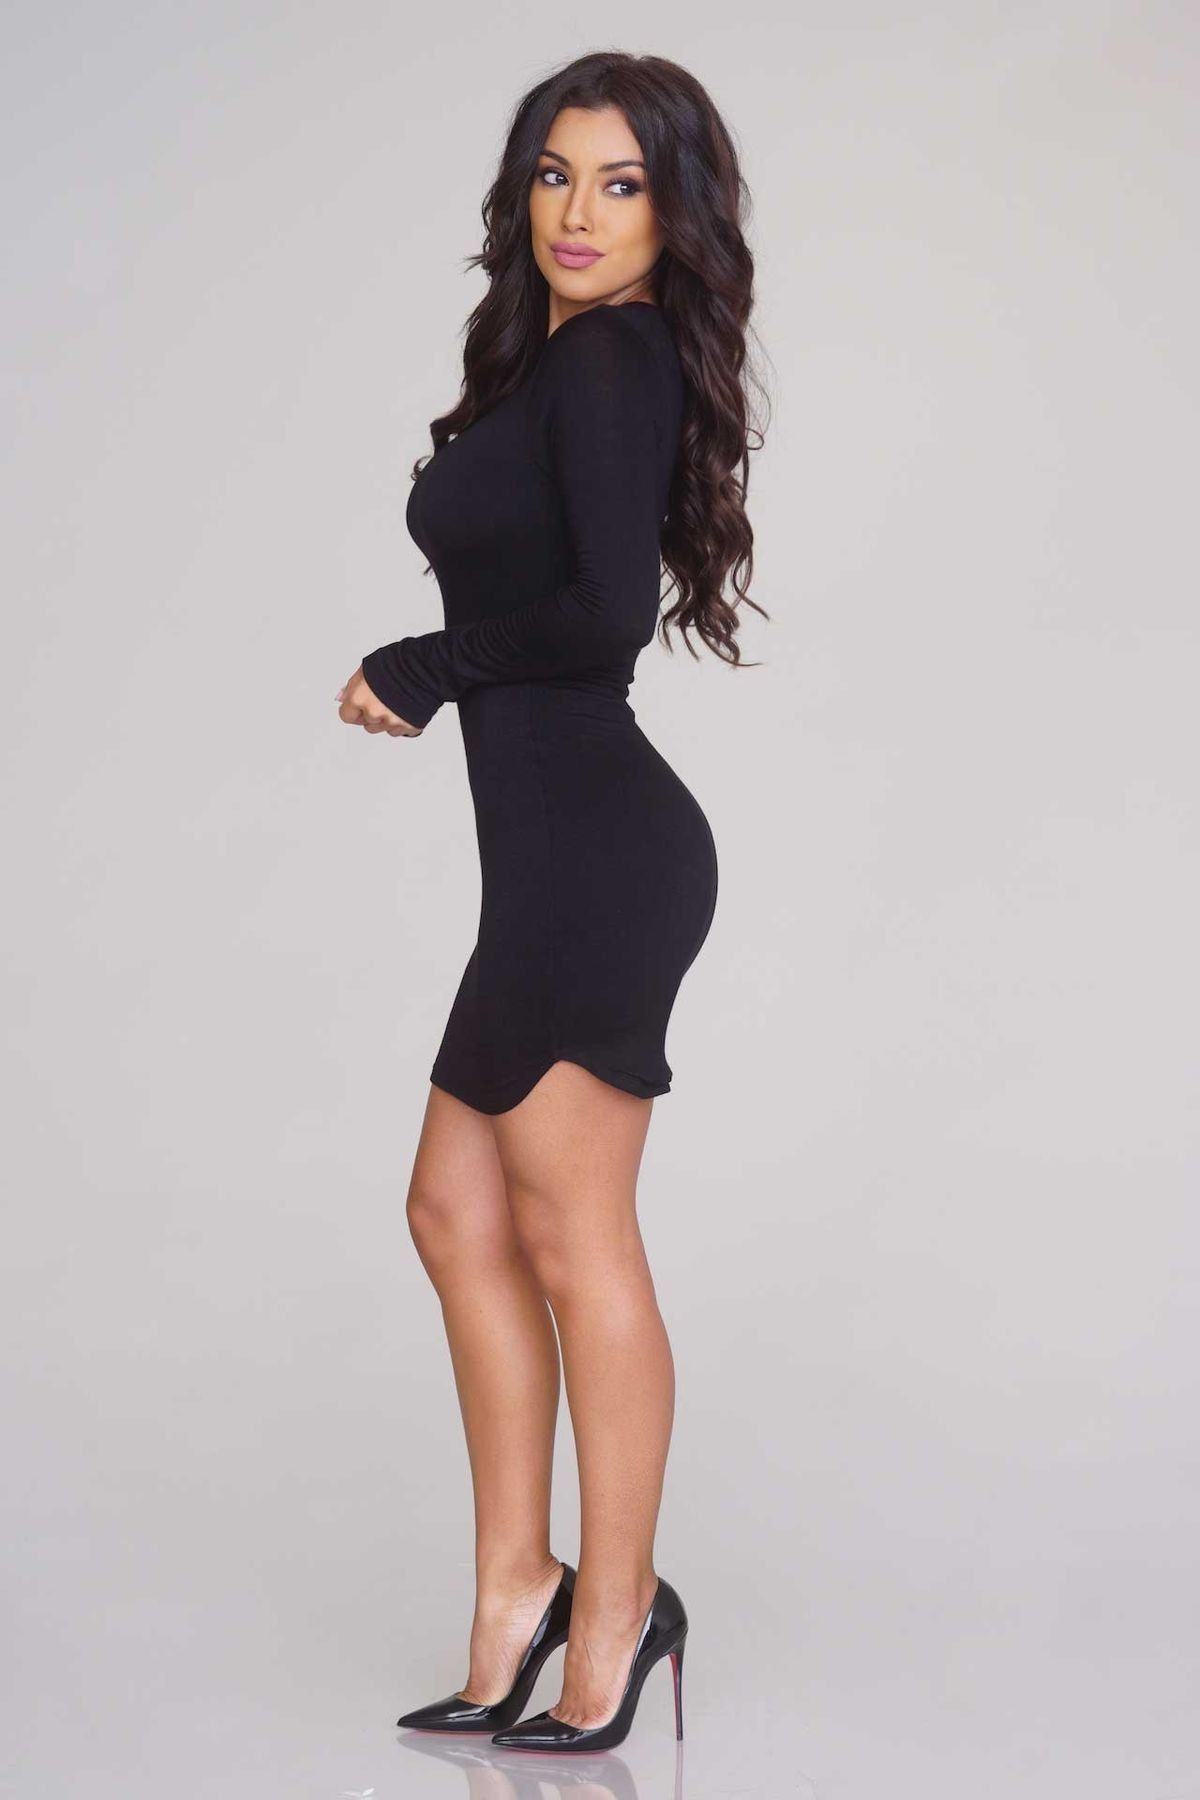 deb2c02739c8 Short Skirts, Short Dresses, Kylie Jenner, Leggings, Tights, Drop Dead  Gorgeous